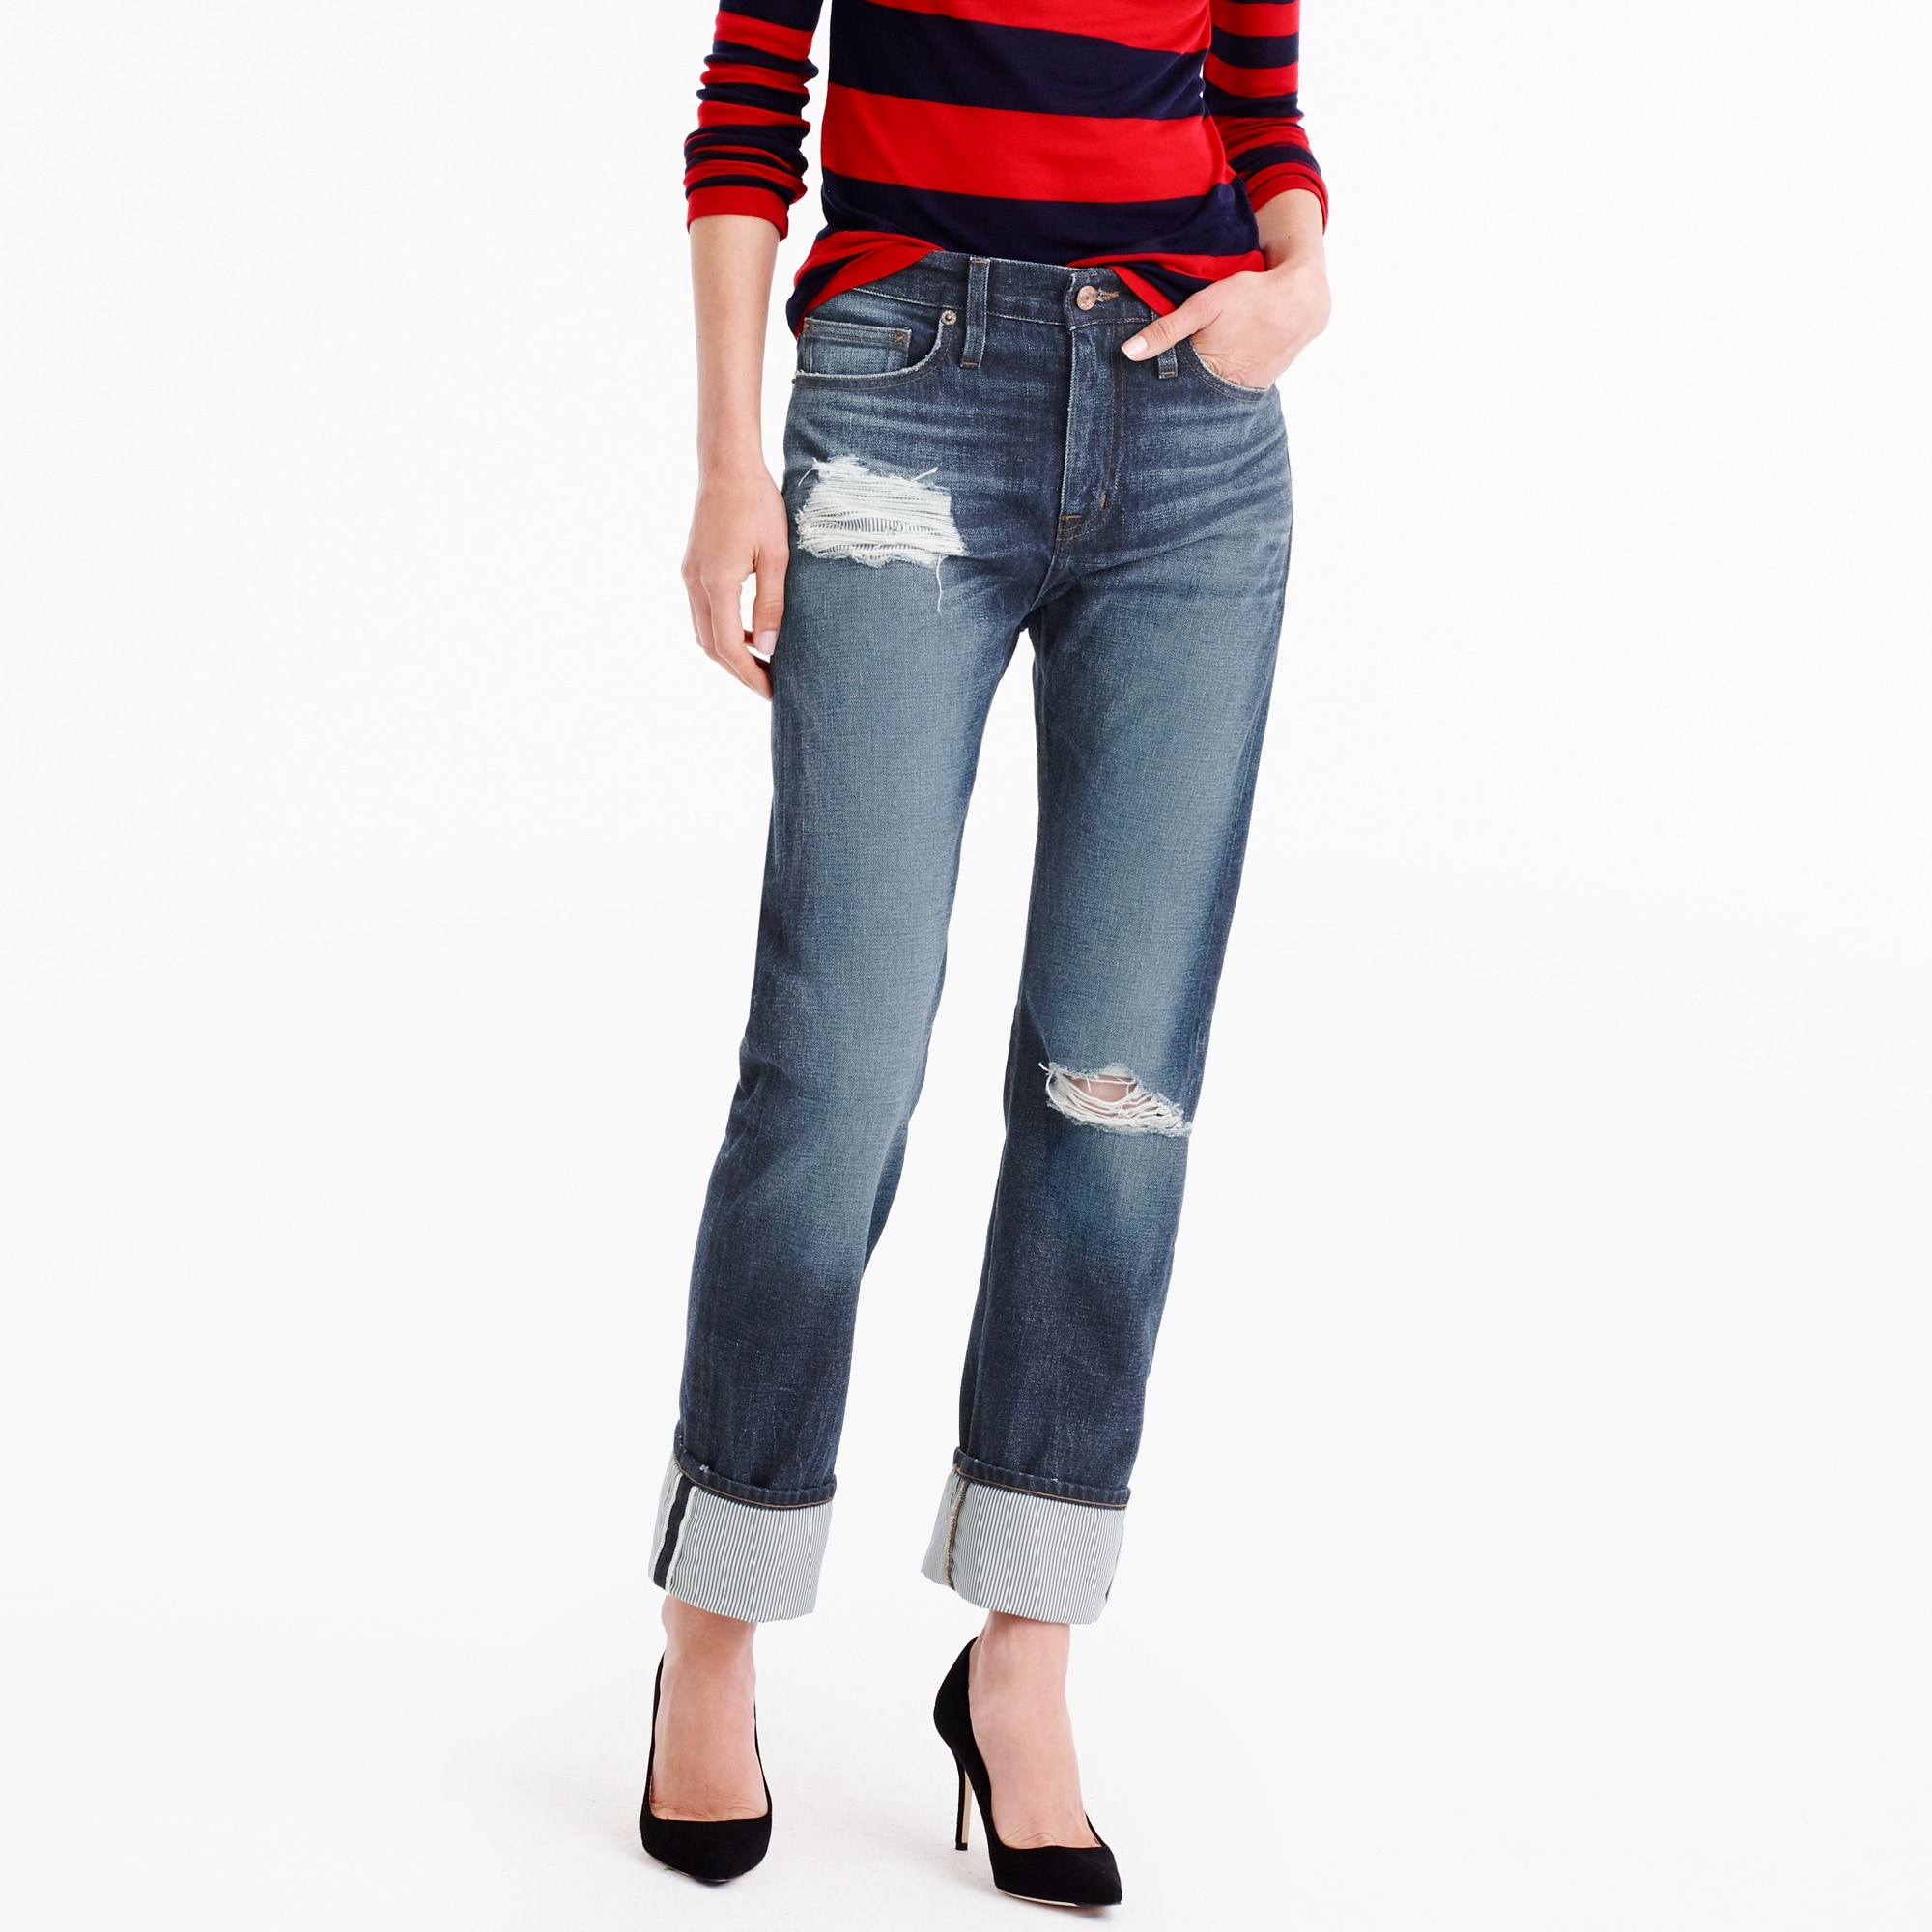 J.Crew for NET-A-PORTER® Point Sur boyfriend jean